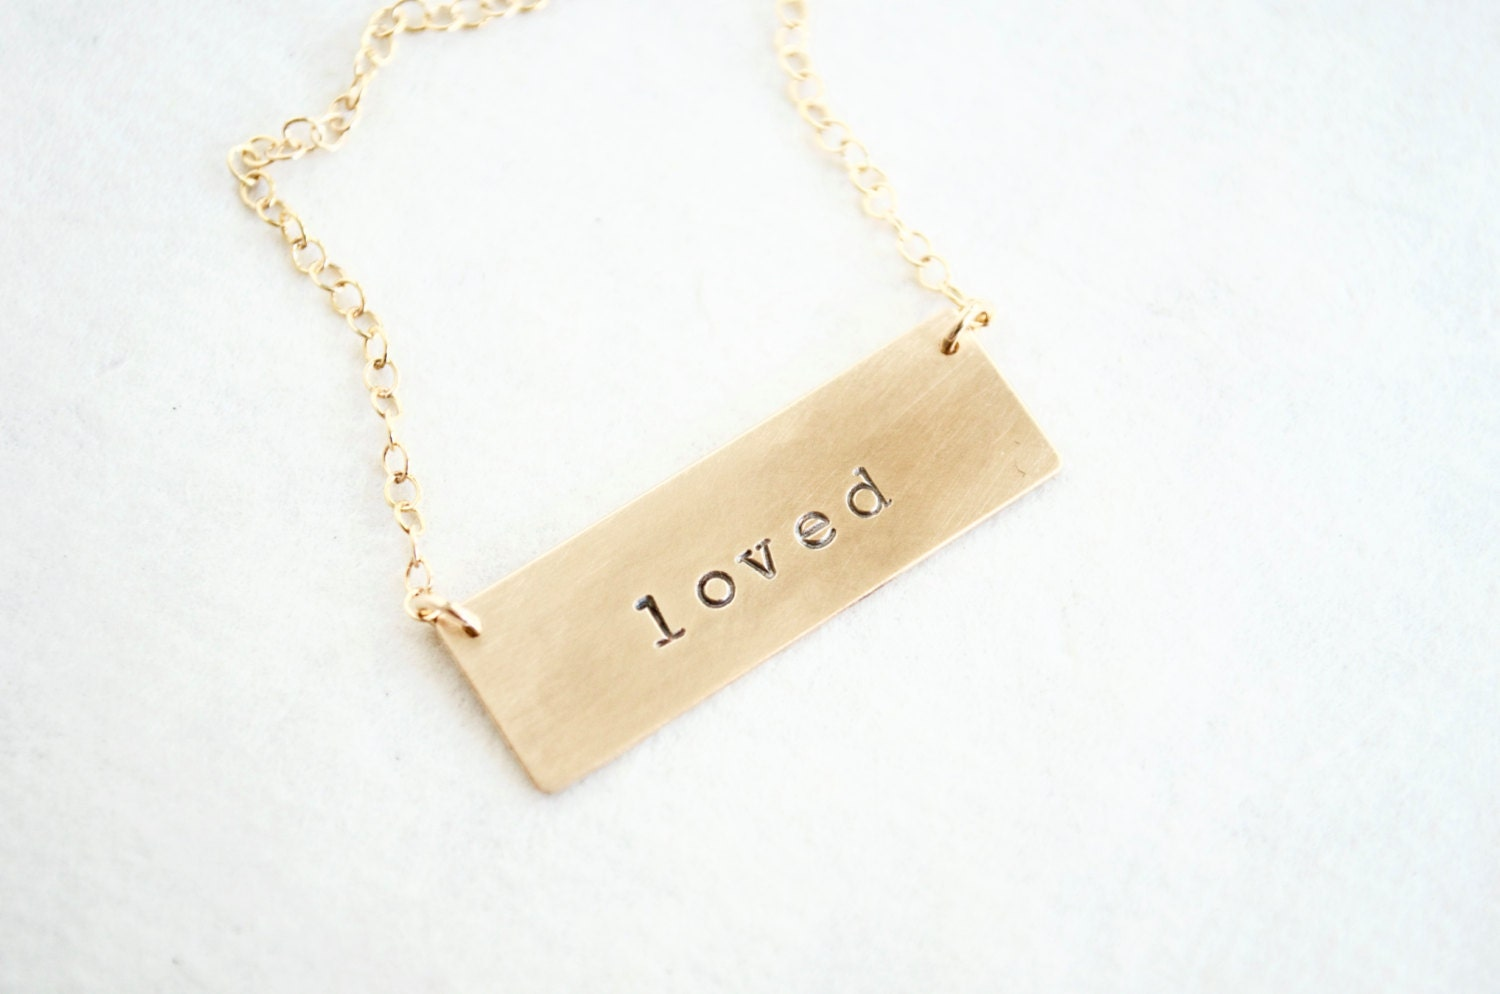 custom gold bar necklace 14k gold fill personalized